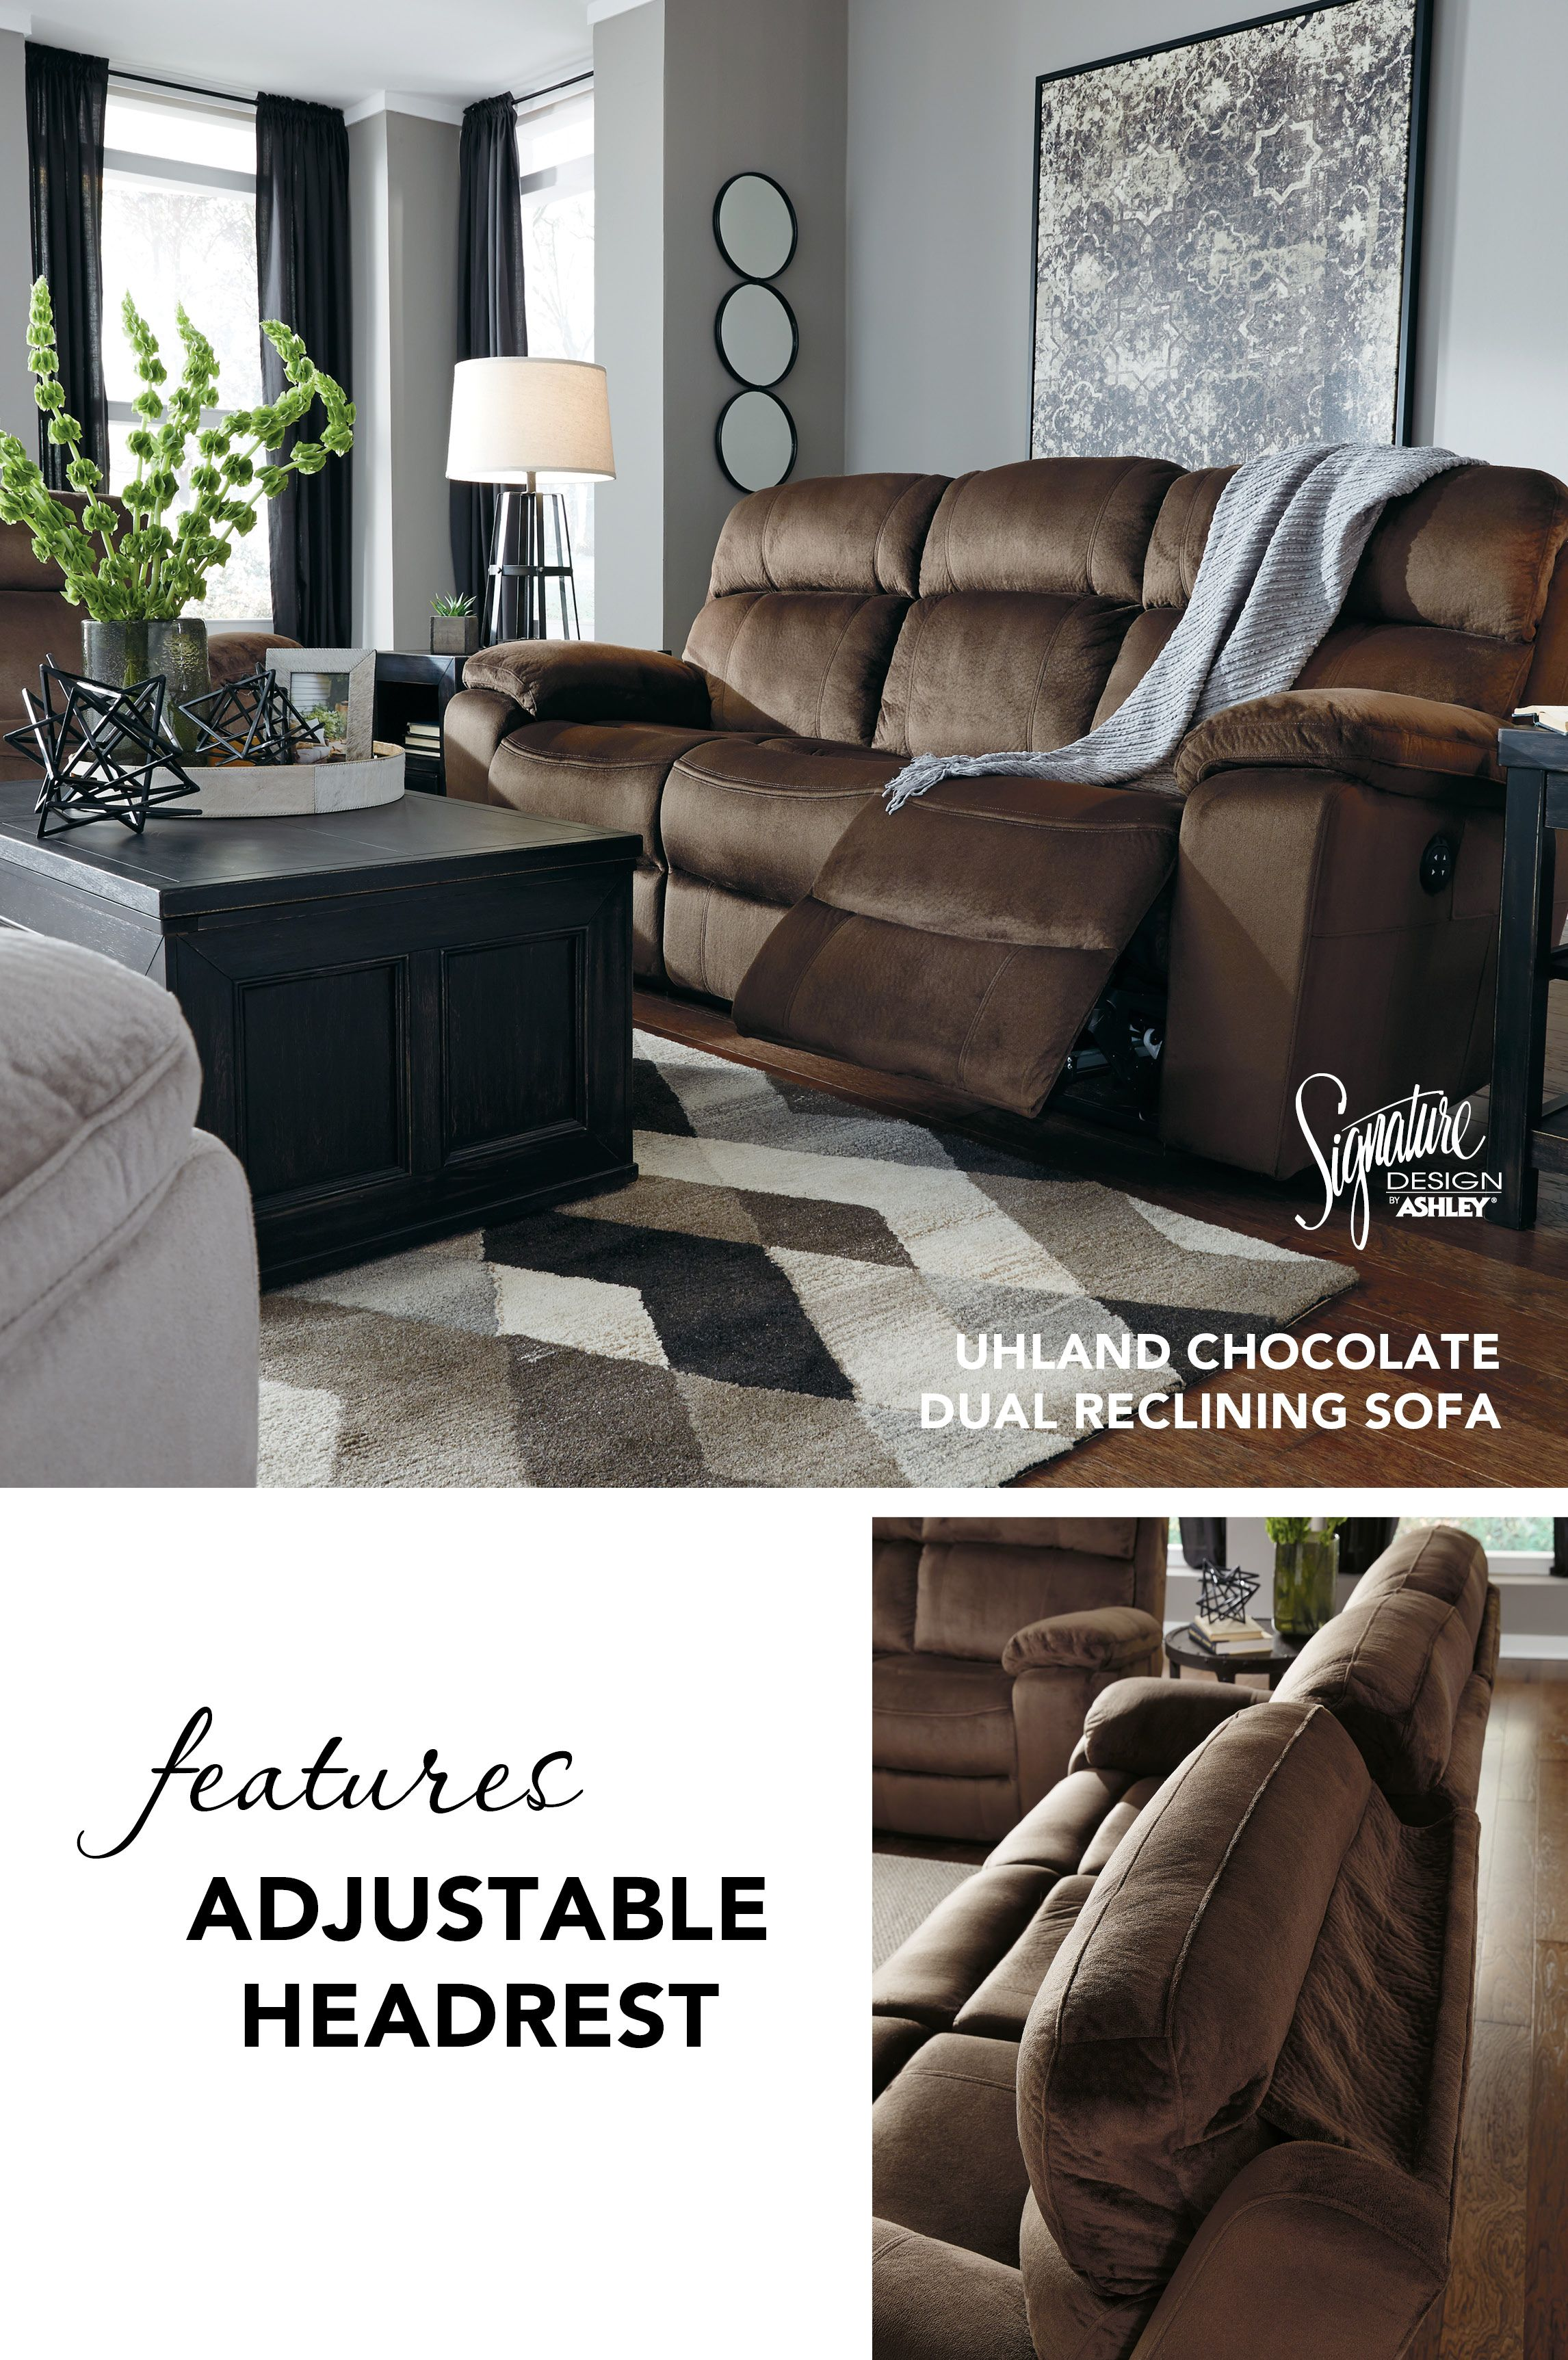 Ashleyfurniture Discover The Power Of Power With The